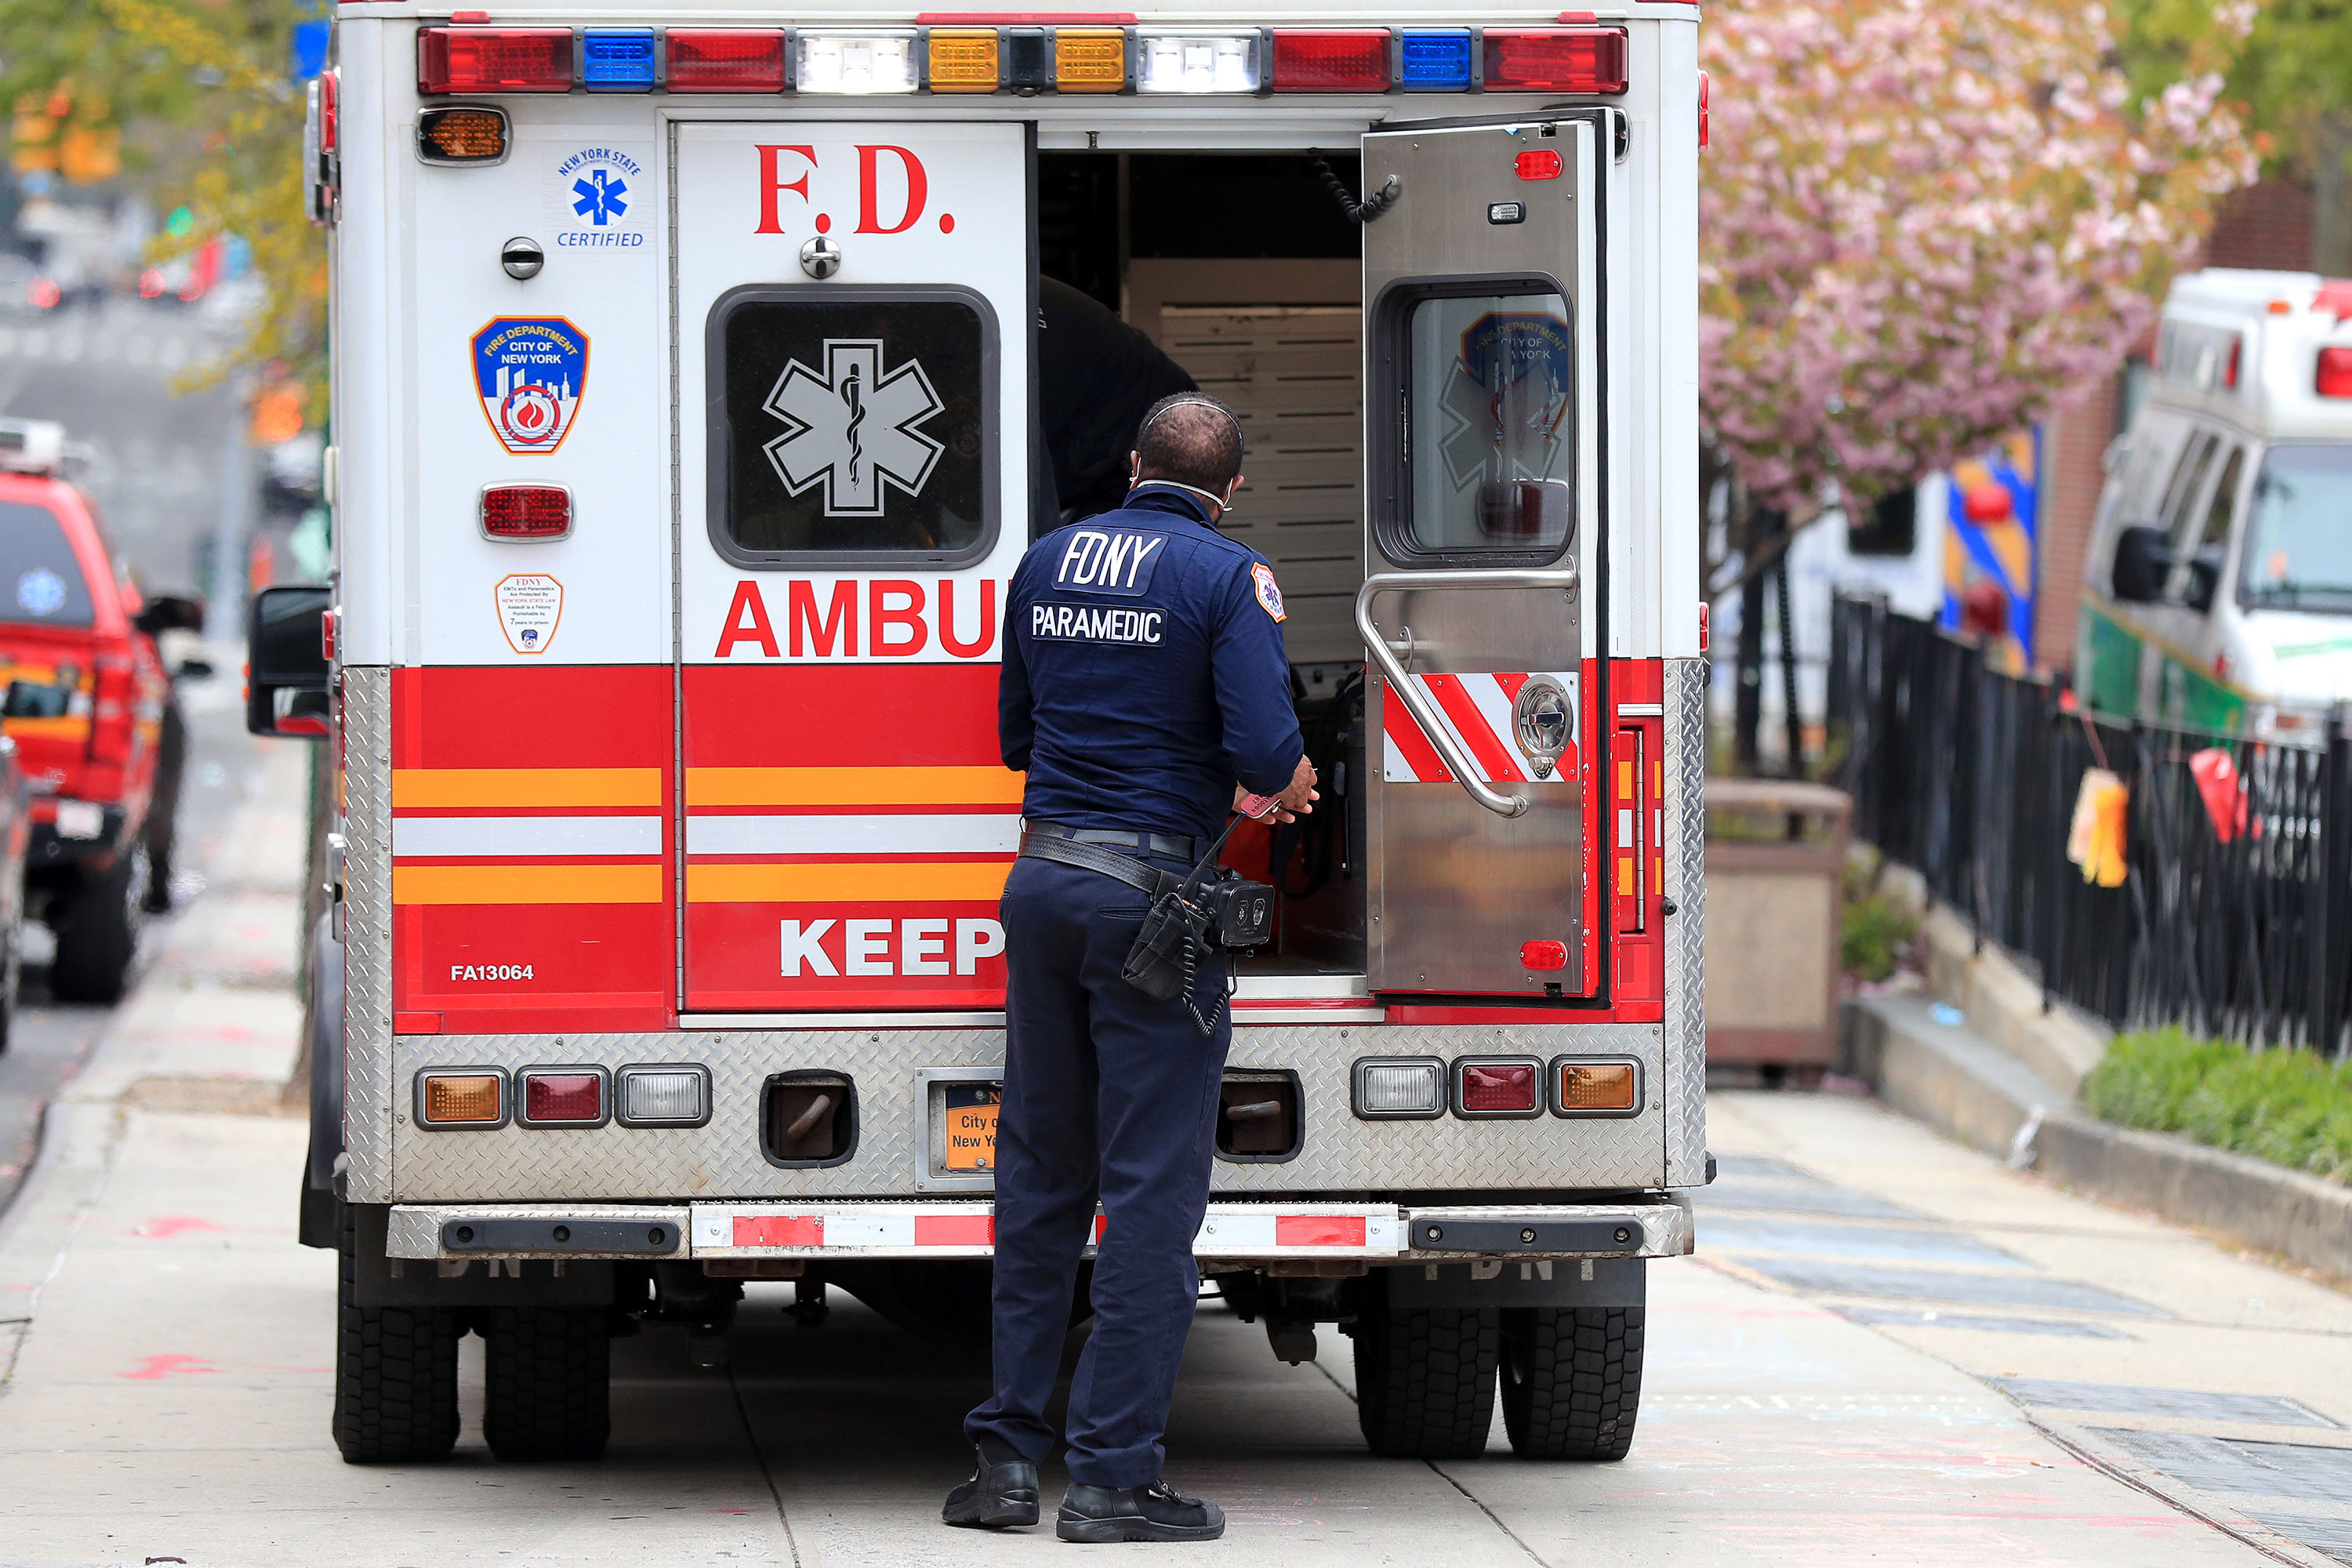 A FDNY paramedic unloads a patient from an ambulance near the Emergency Room entrance to the Brooklyn Hospital Center on April 23 in New York City.